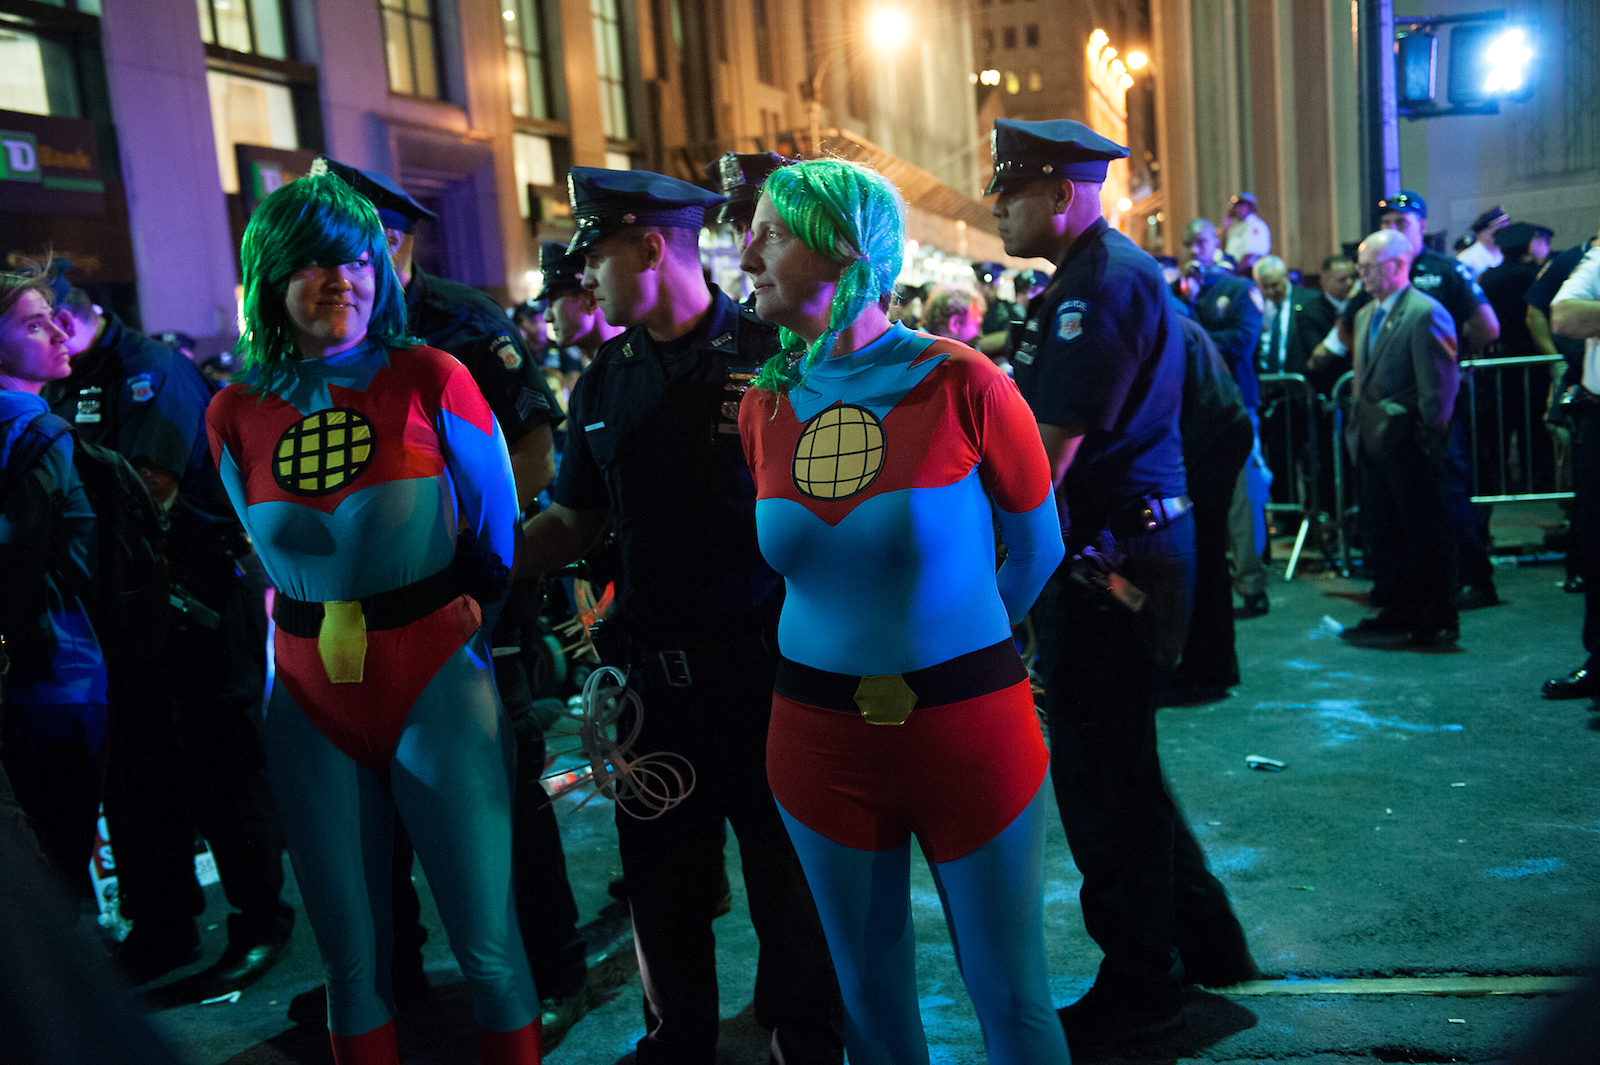 a night scene: two women in blue tights, green wigs, and red shorts are handcuffed by police on the street